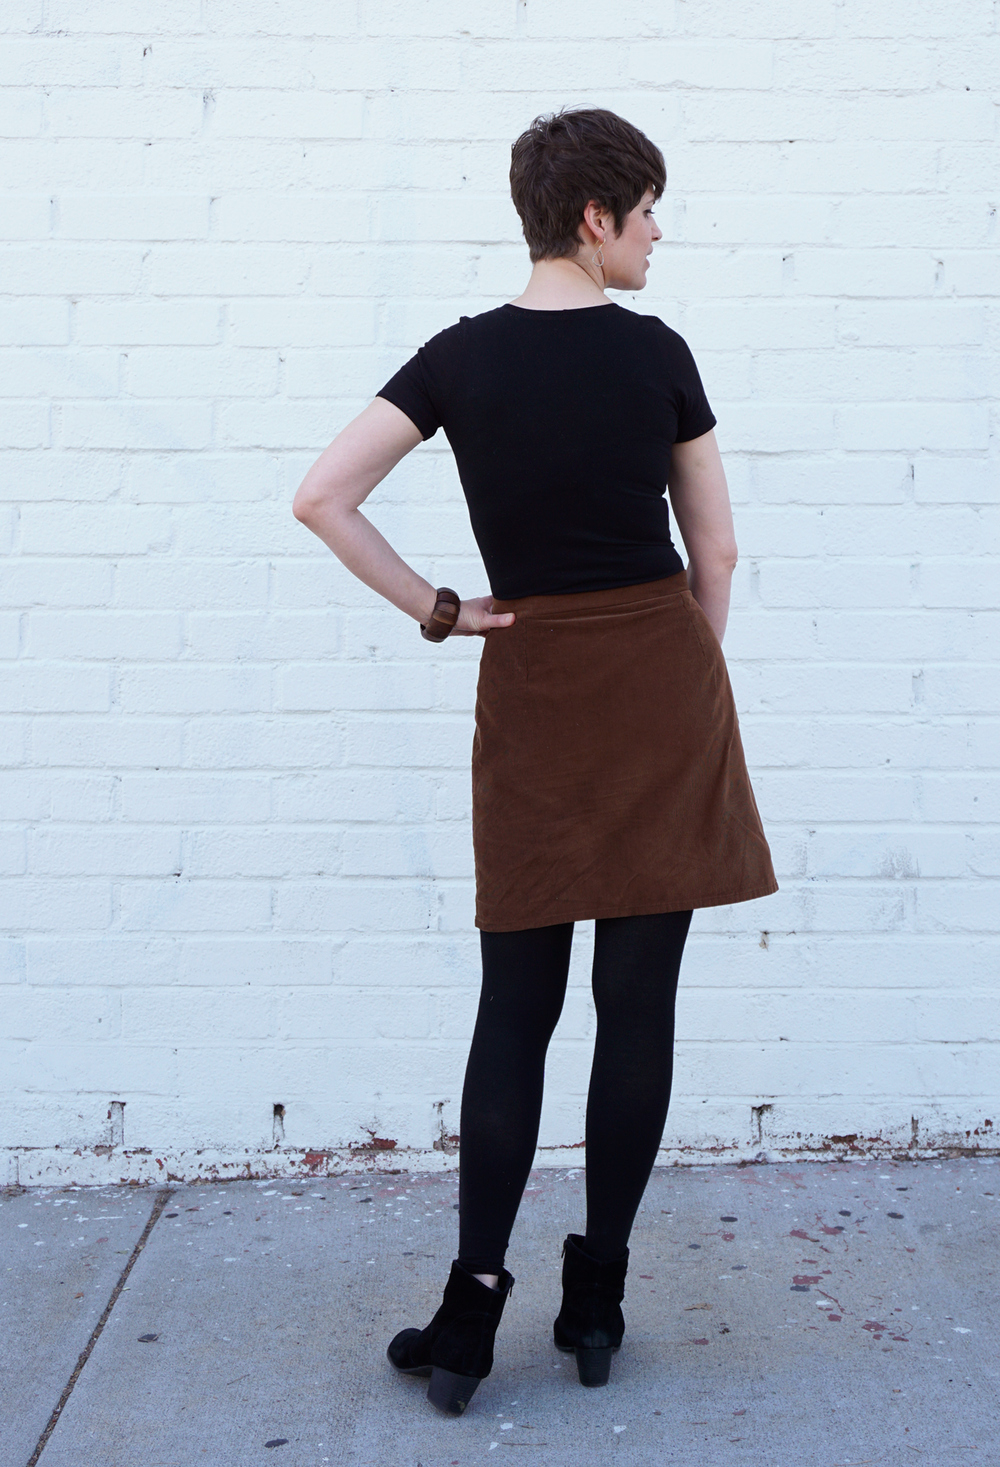 DIY Wardrobe, Nettie Bodysuit and Nita Wrap Skirt | Sew DIY